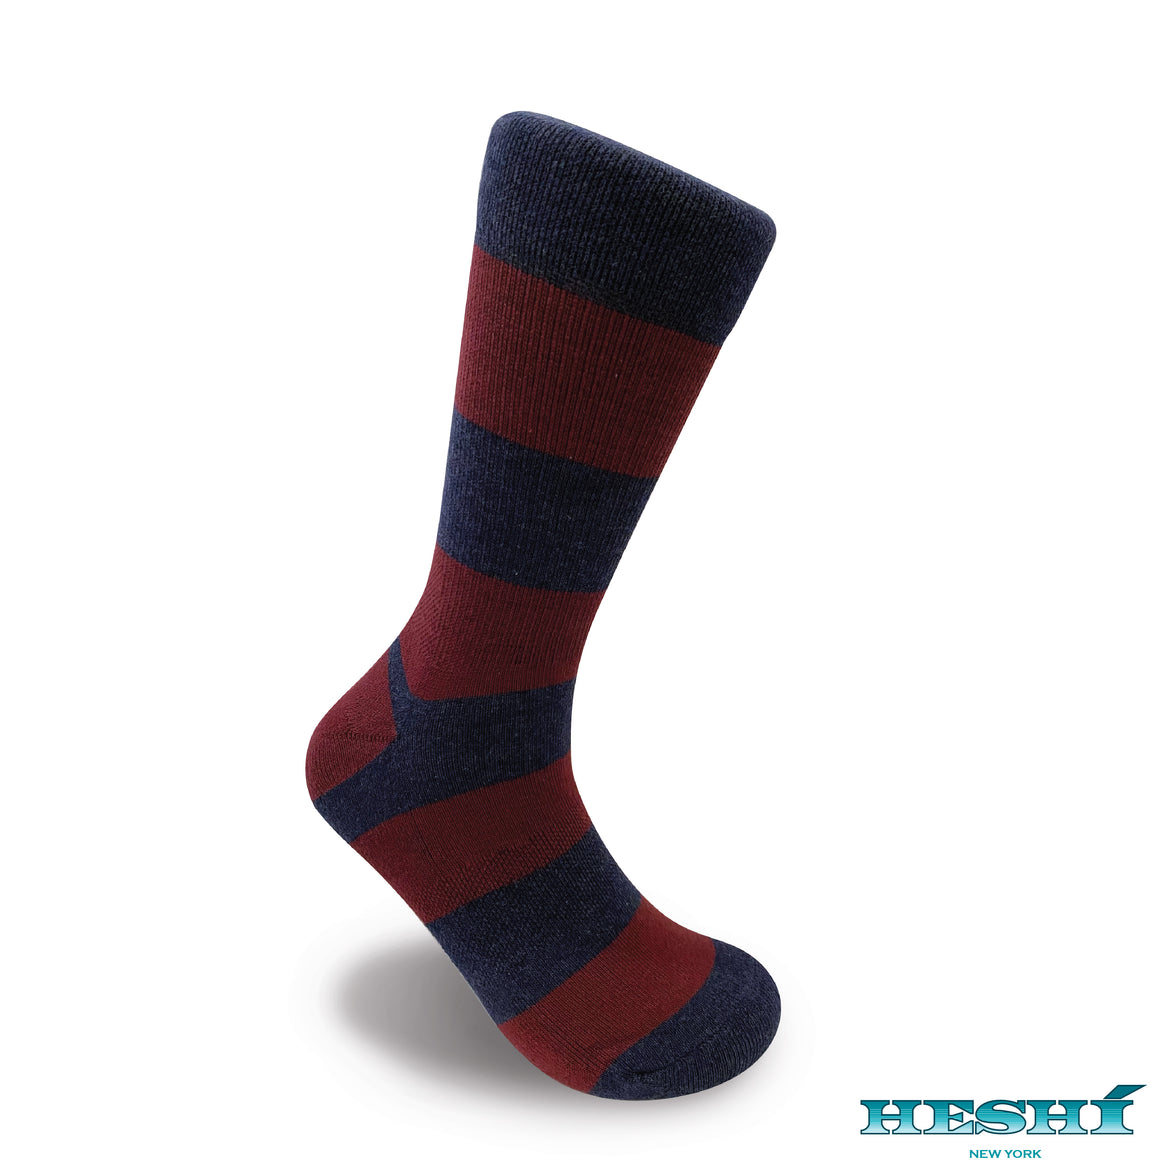 Heshí Rugby Stripe Sock - Heather